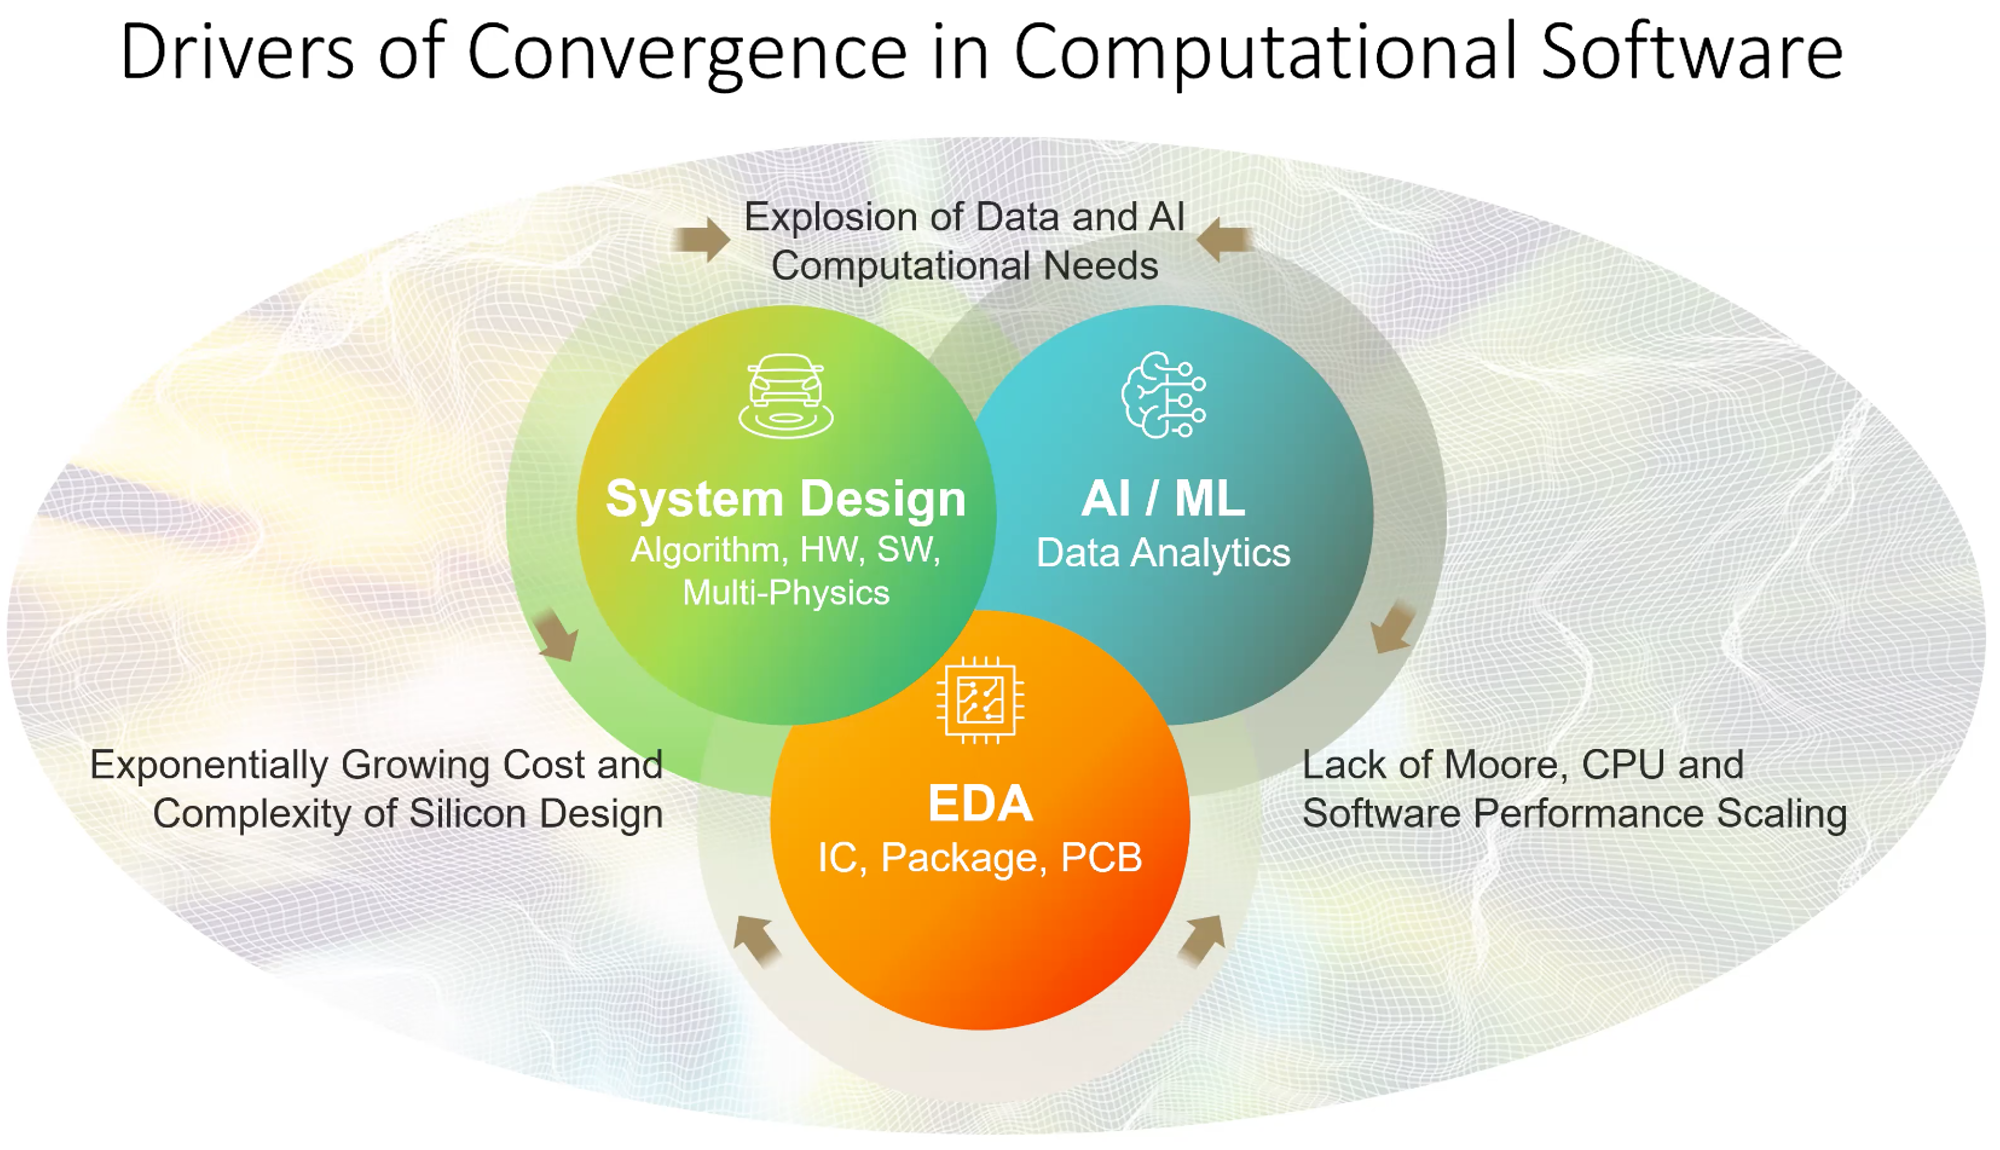 Drivers of Convergence in Computational Software